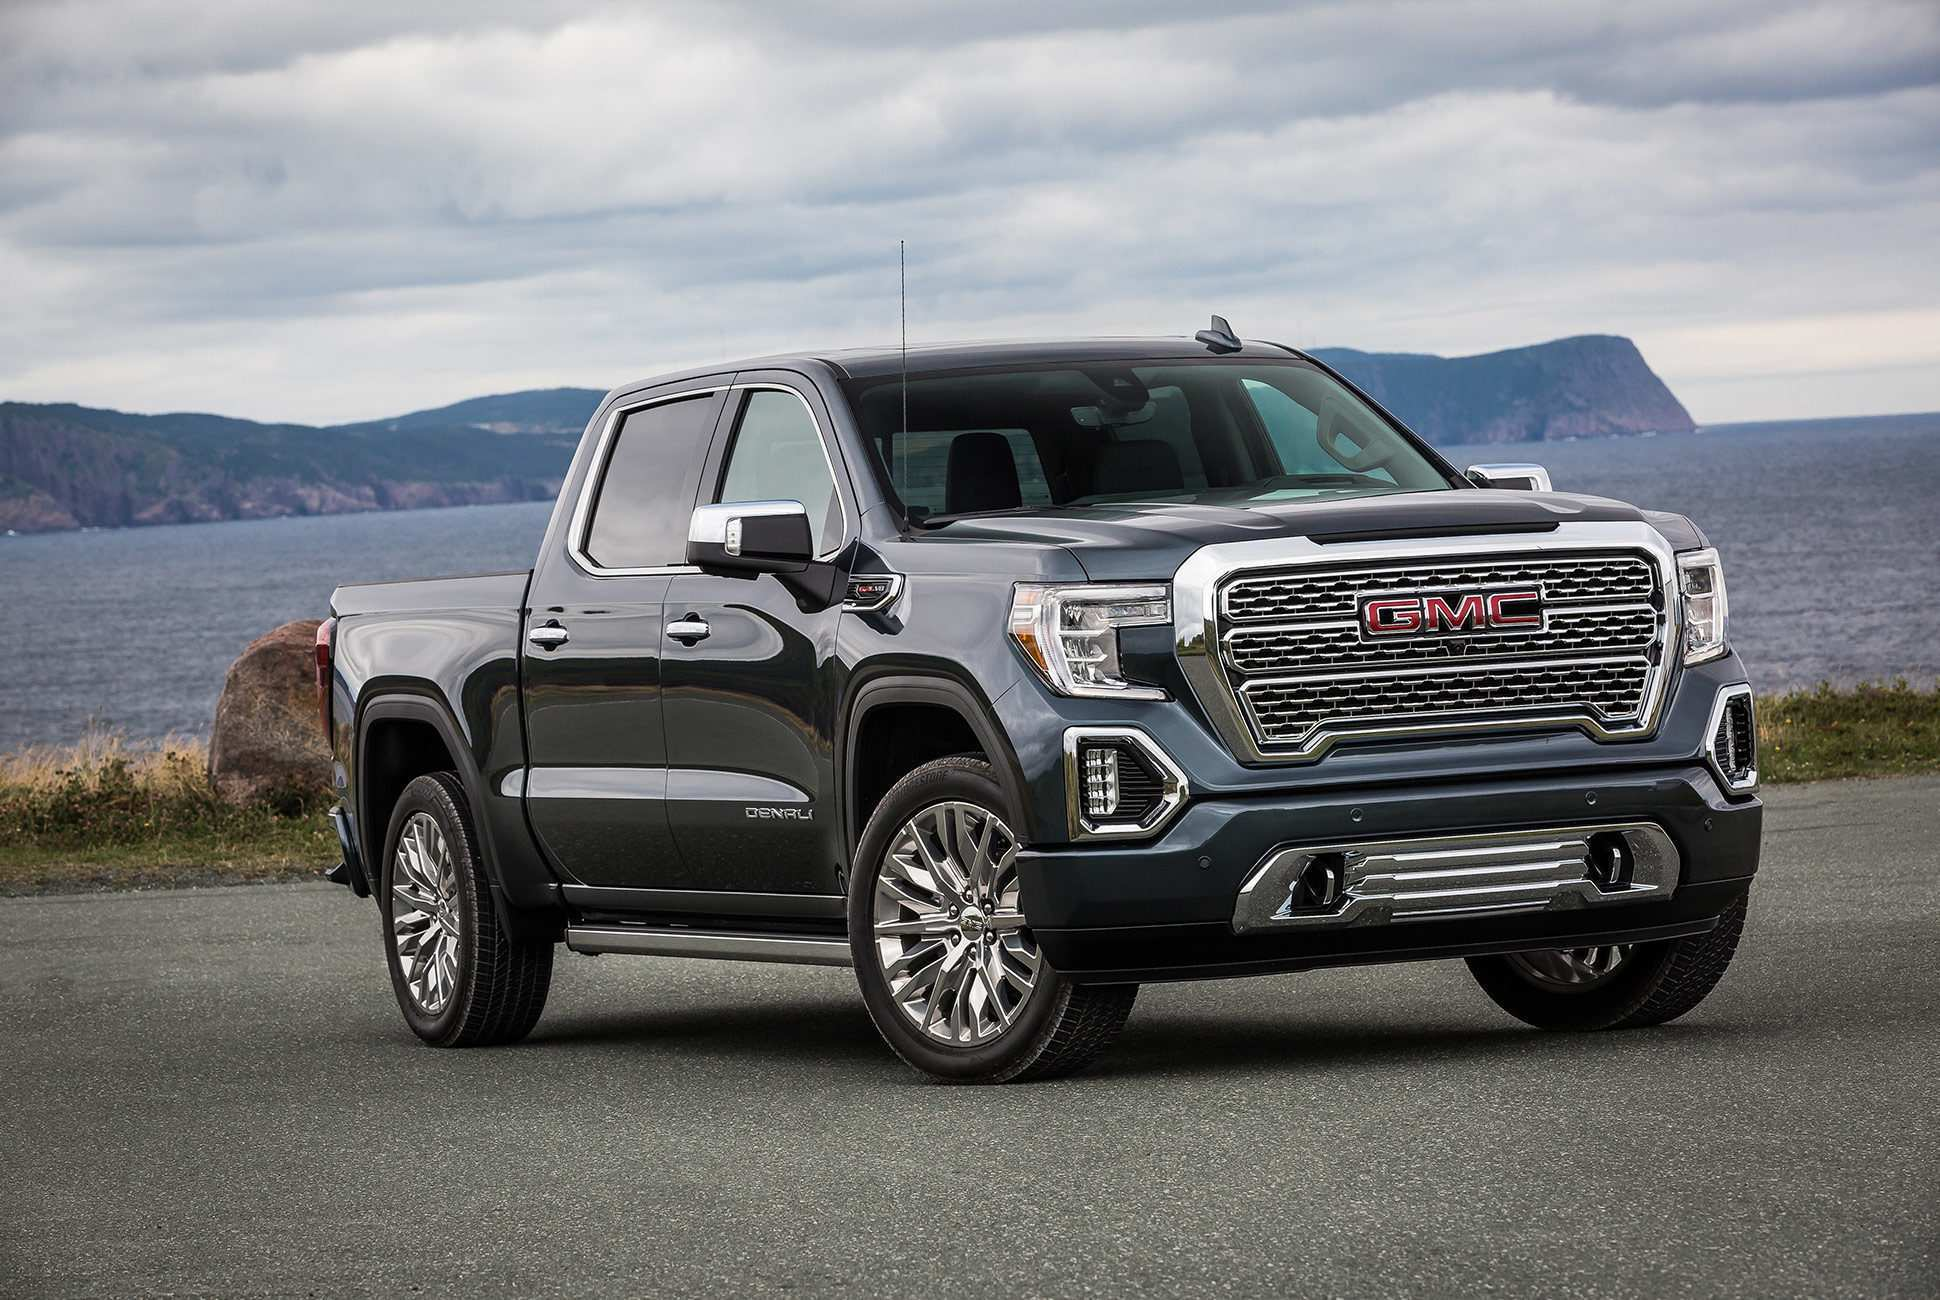 36 The 2019 Gmc Sierra Denali 1500 Hd Price And Release Date